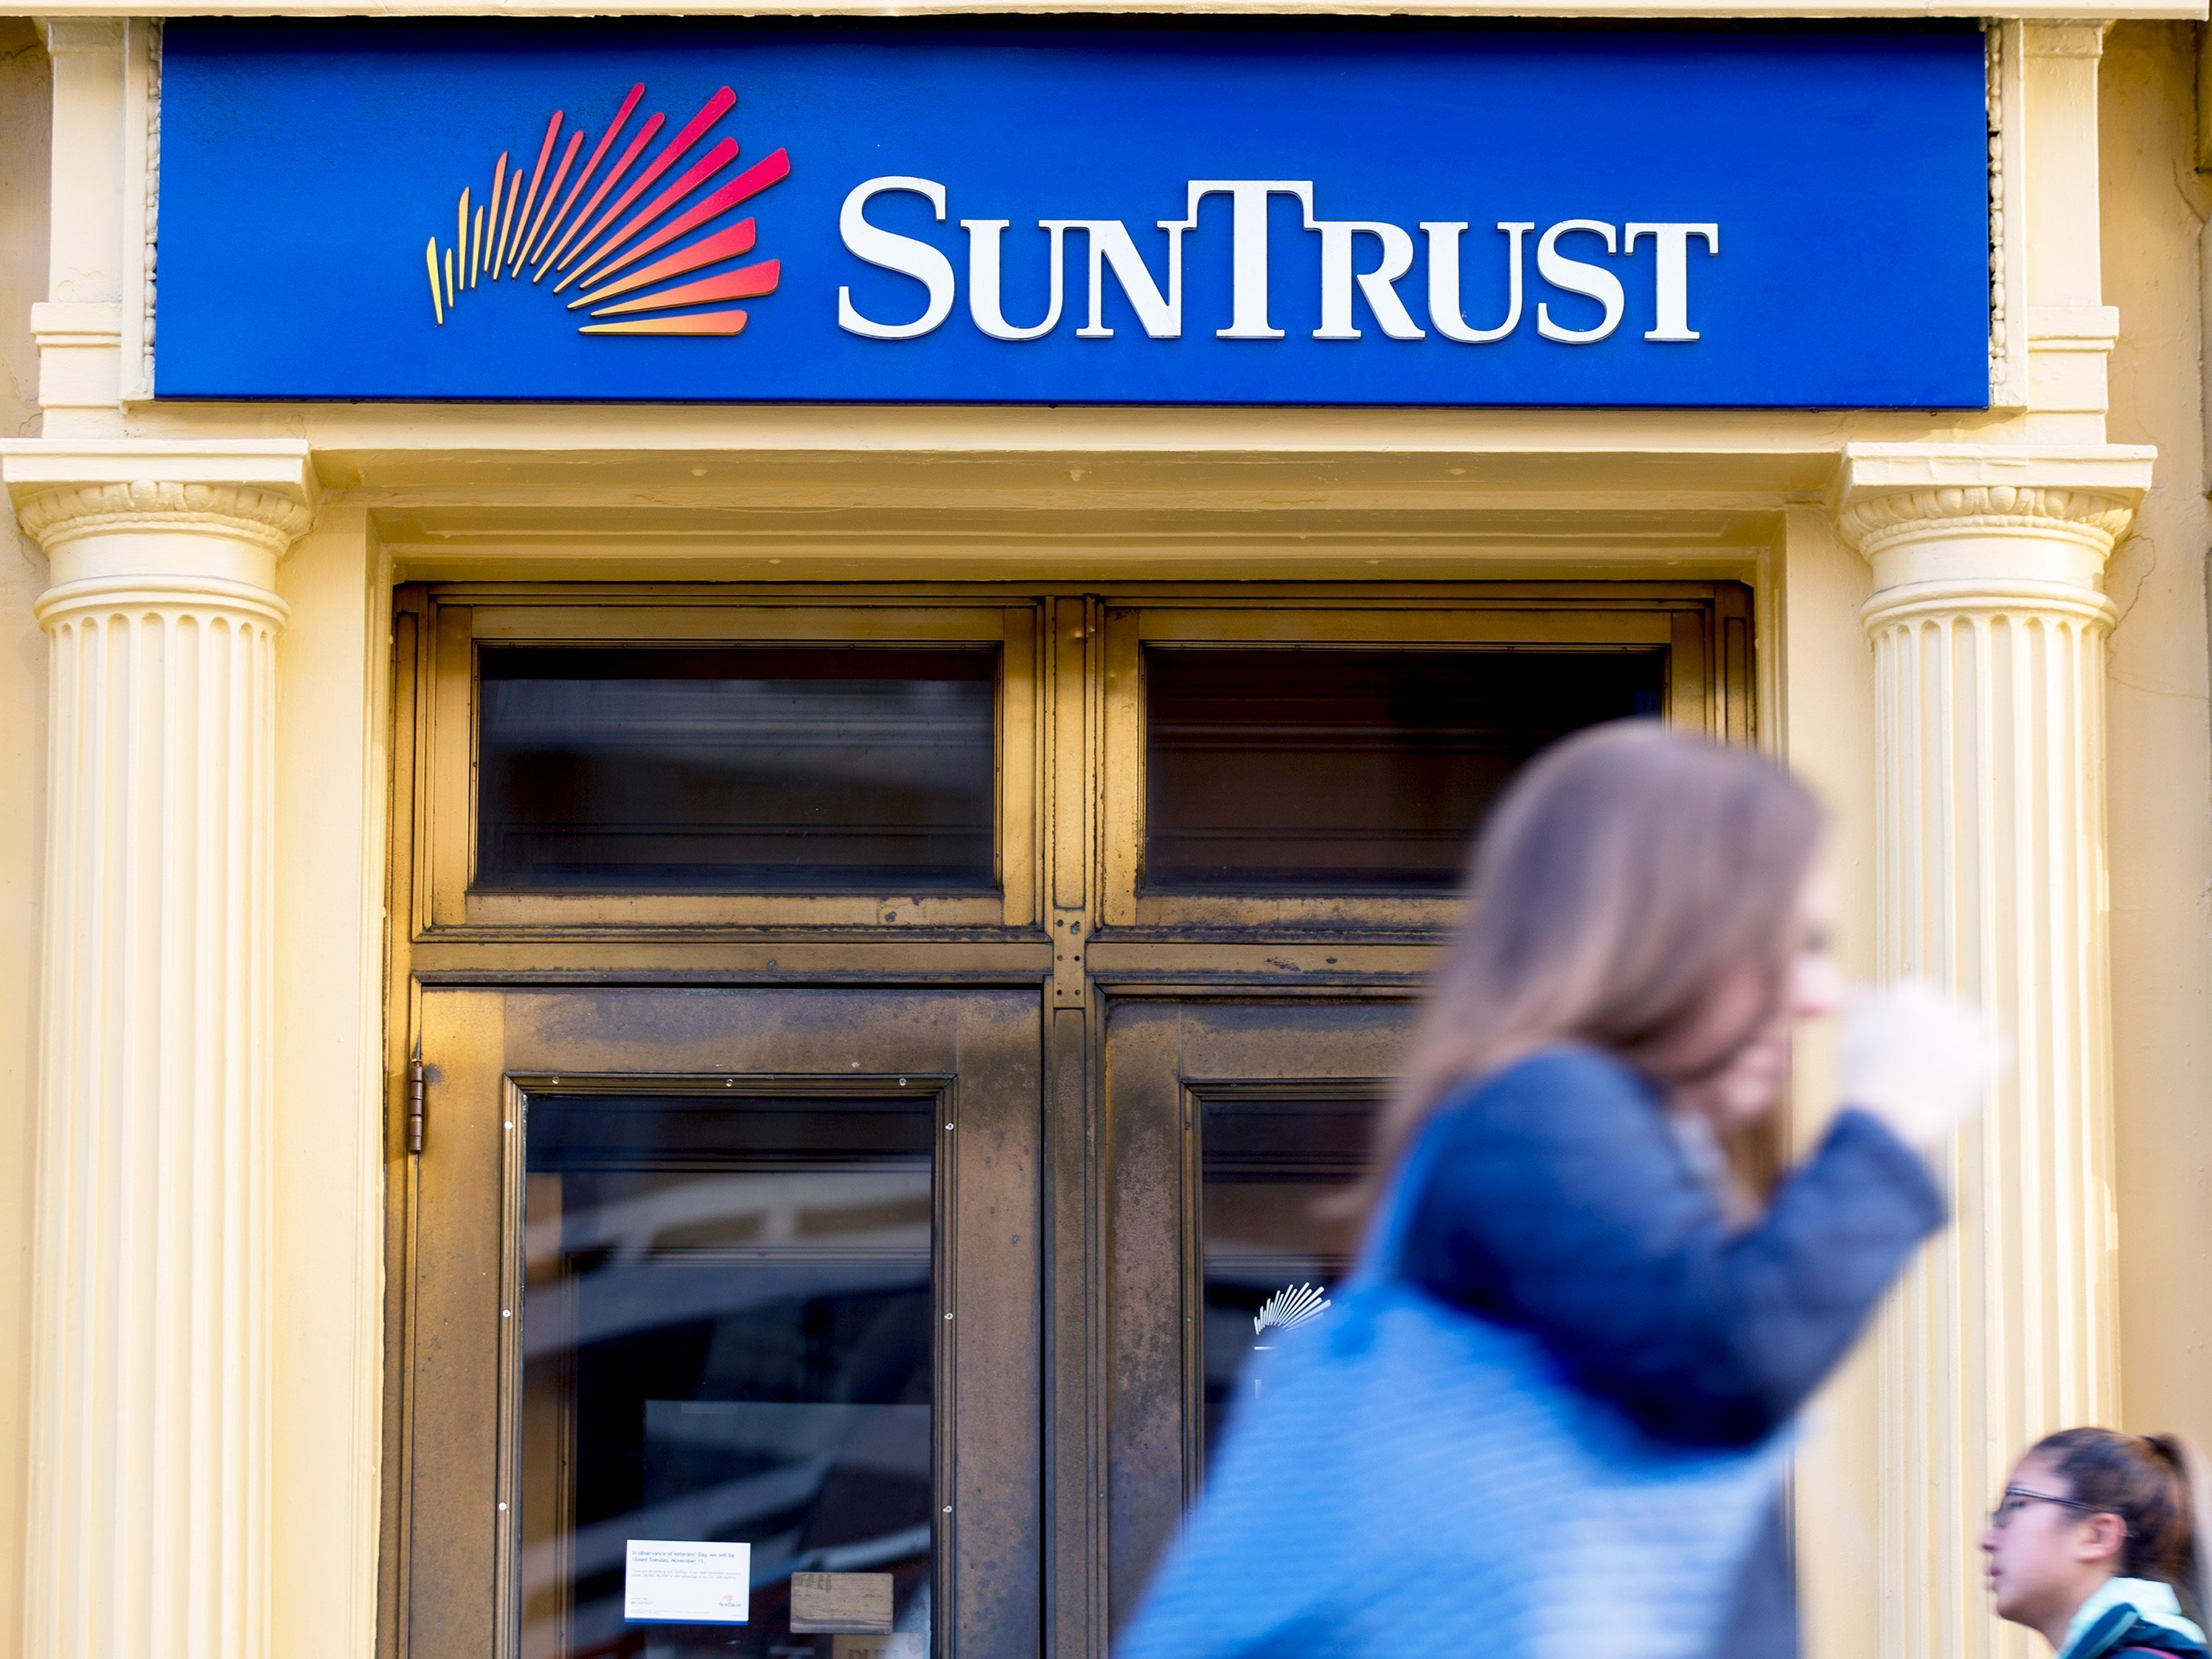 SunTrust Says Data on 1.5 Million Customers May Have Been Stolen